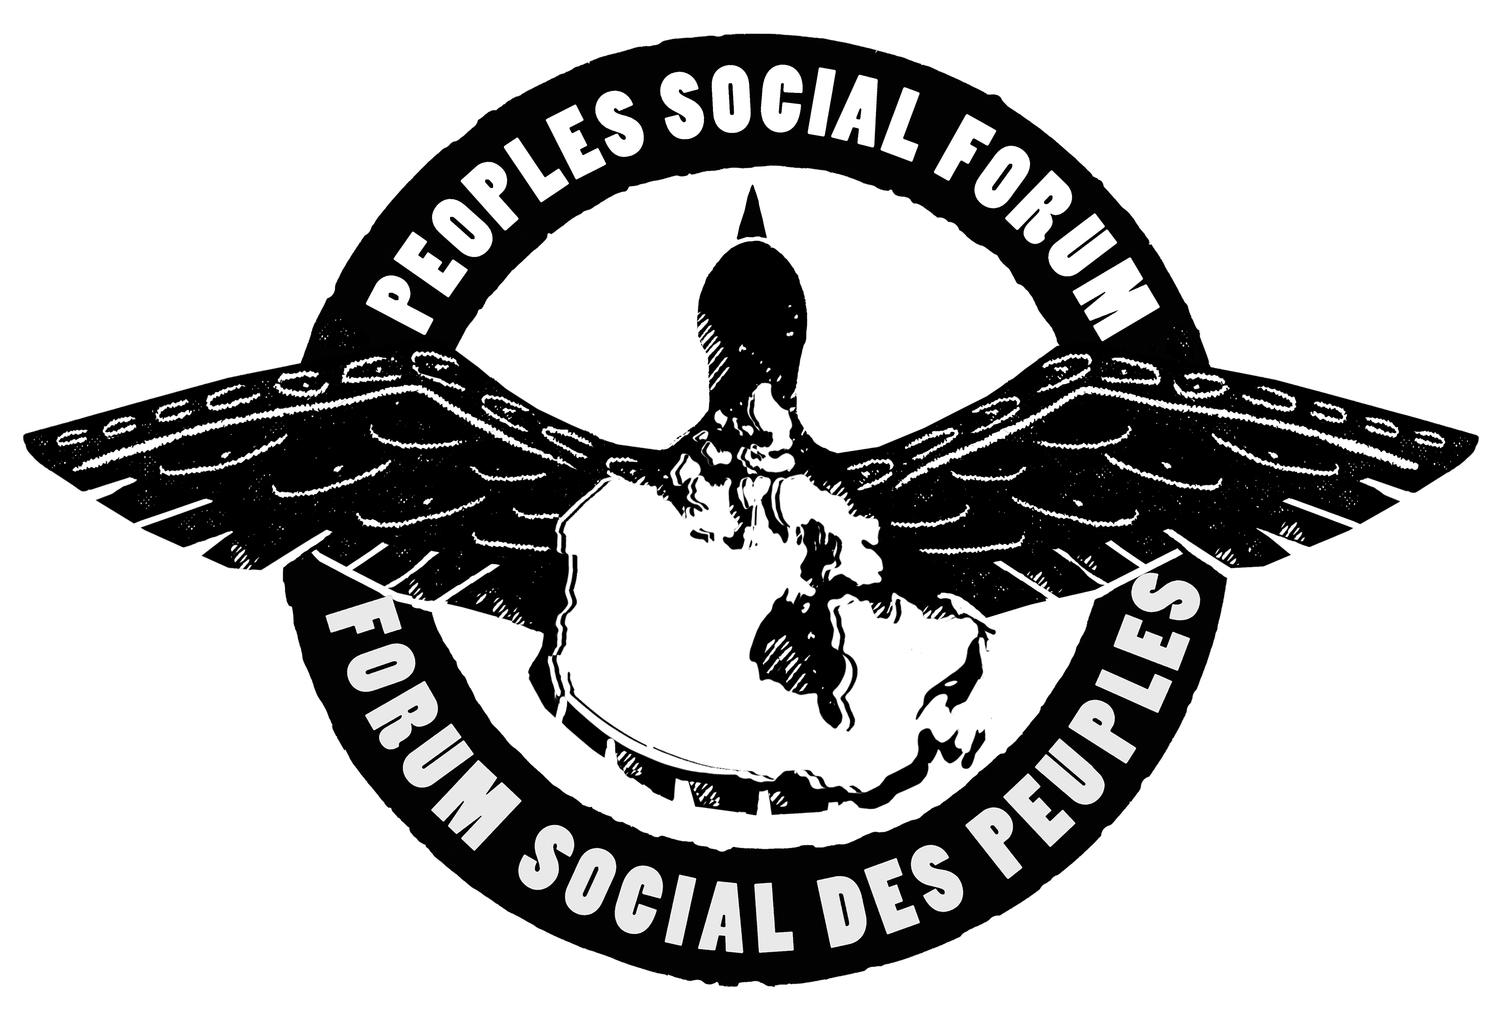 Forum social des peuples - Peoples' Social Forum